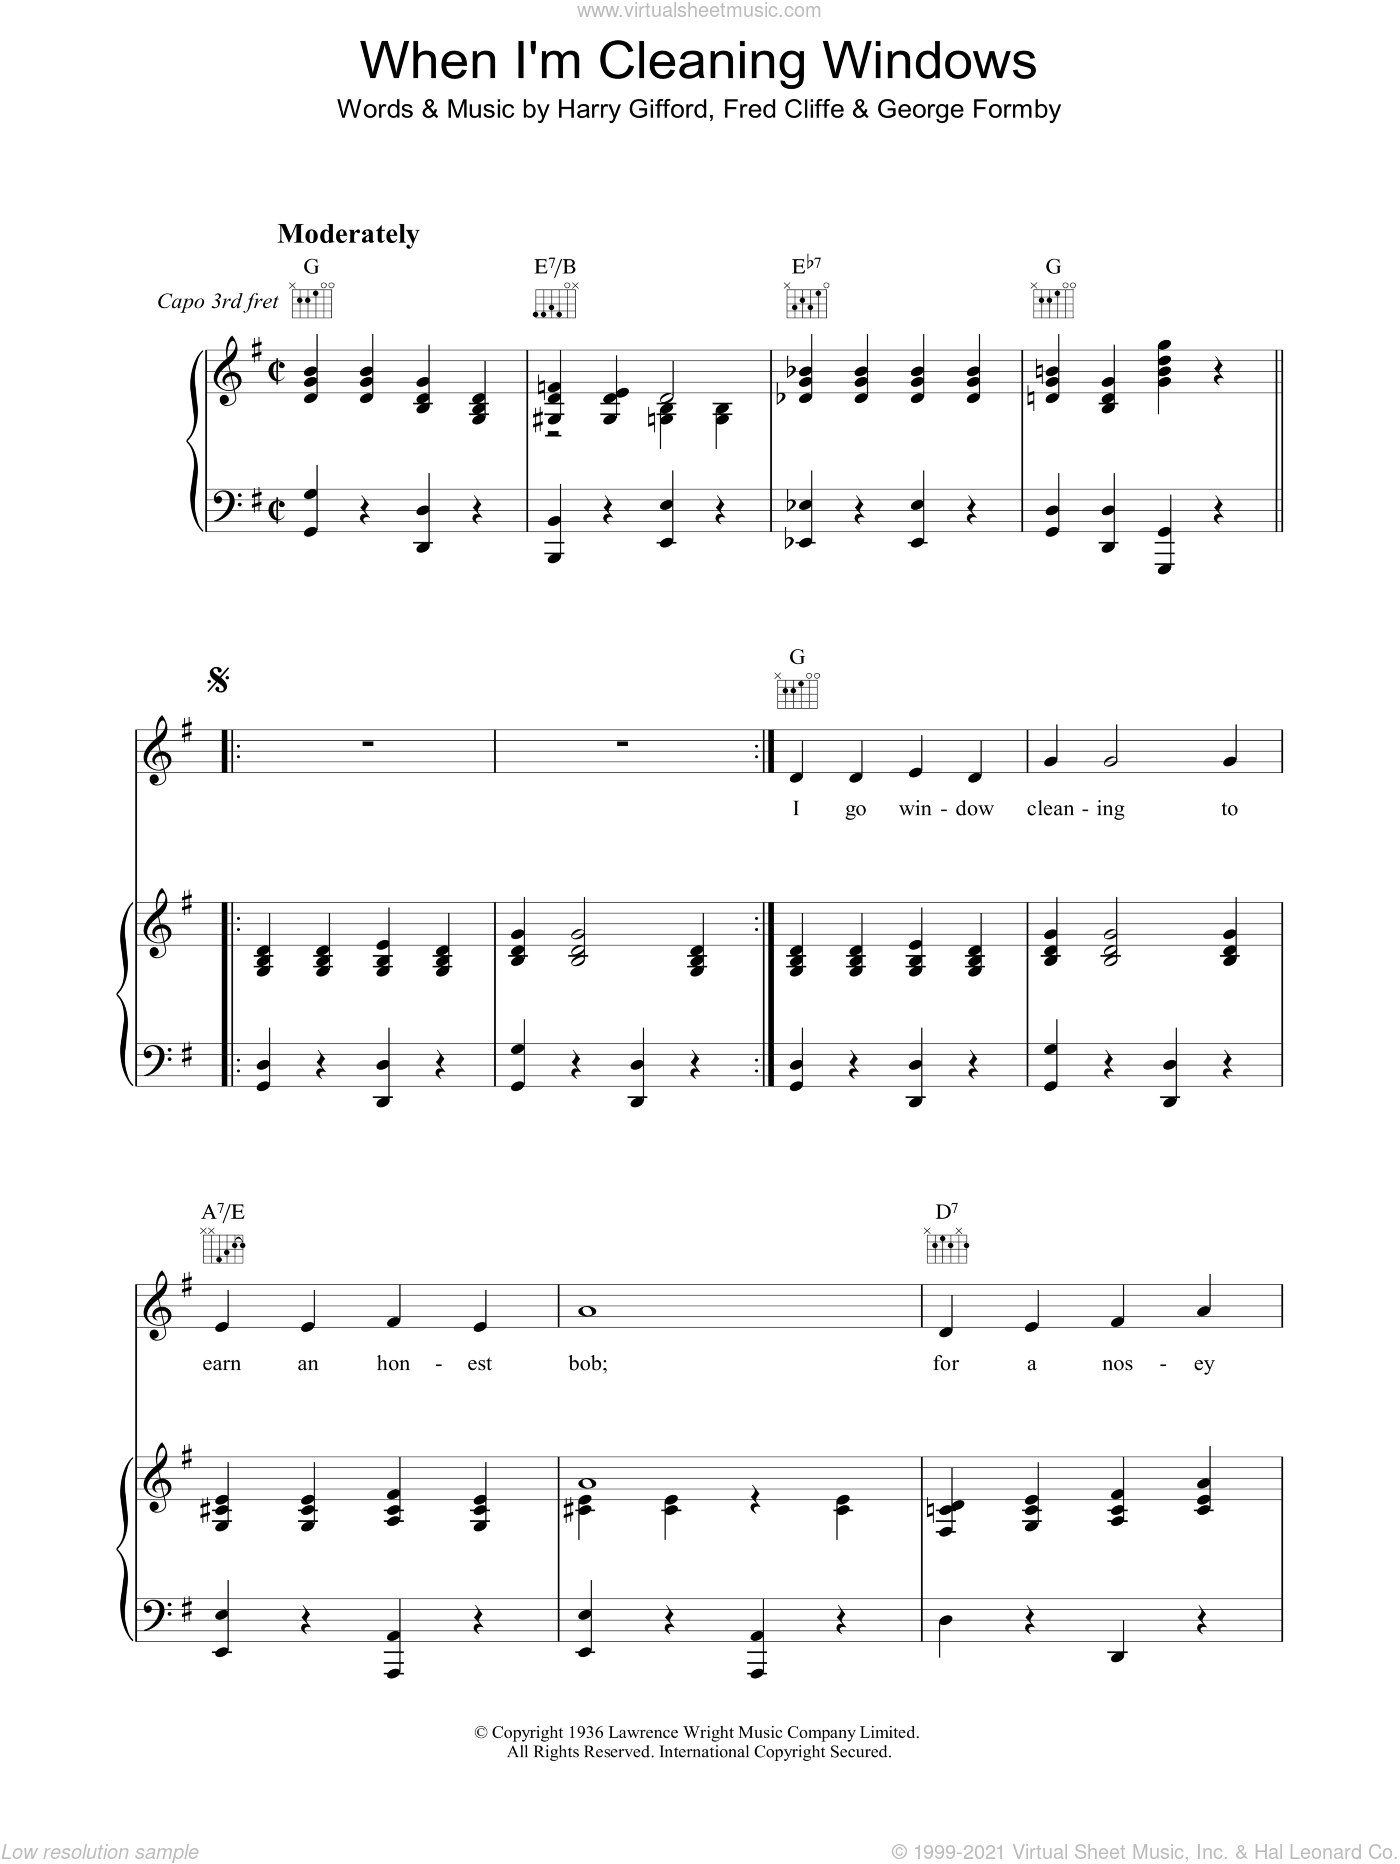 When I'm Cleaning Windows sheet music for voice, piano or guitar by Harry Gifford